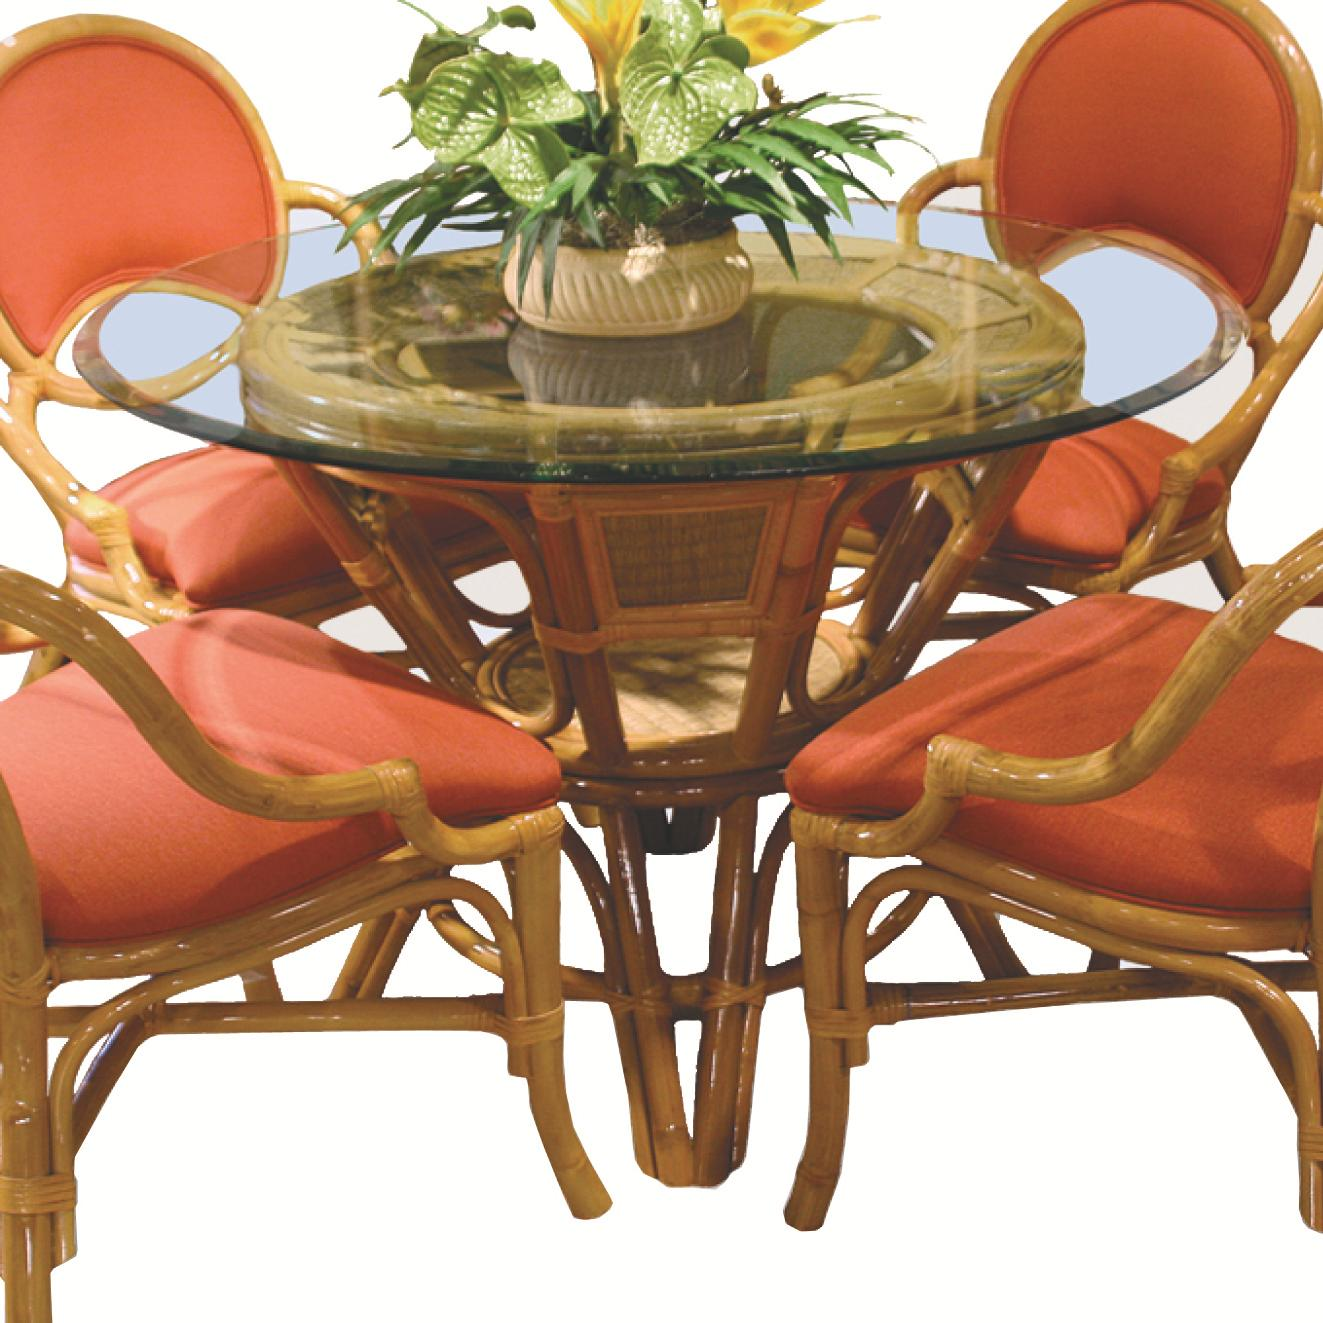 381 Collection Glass Top Kitchen Table by Capris Furniture at Esprit Decor Home Furnishings